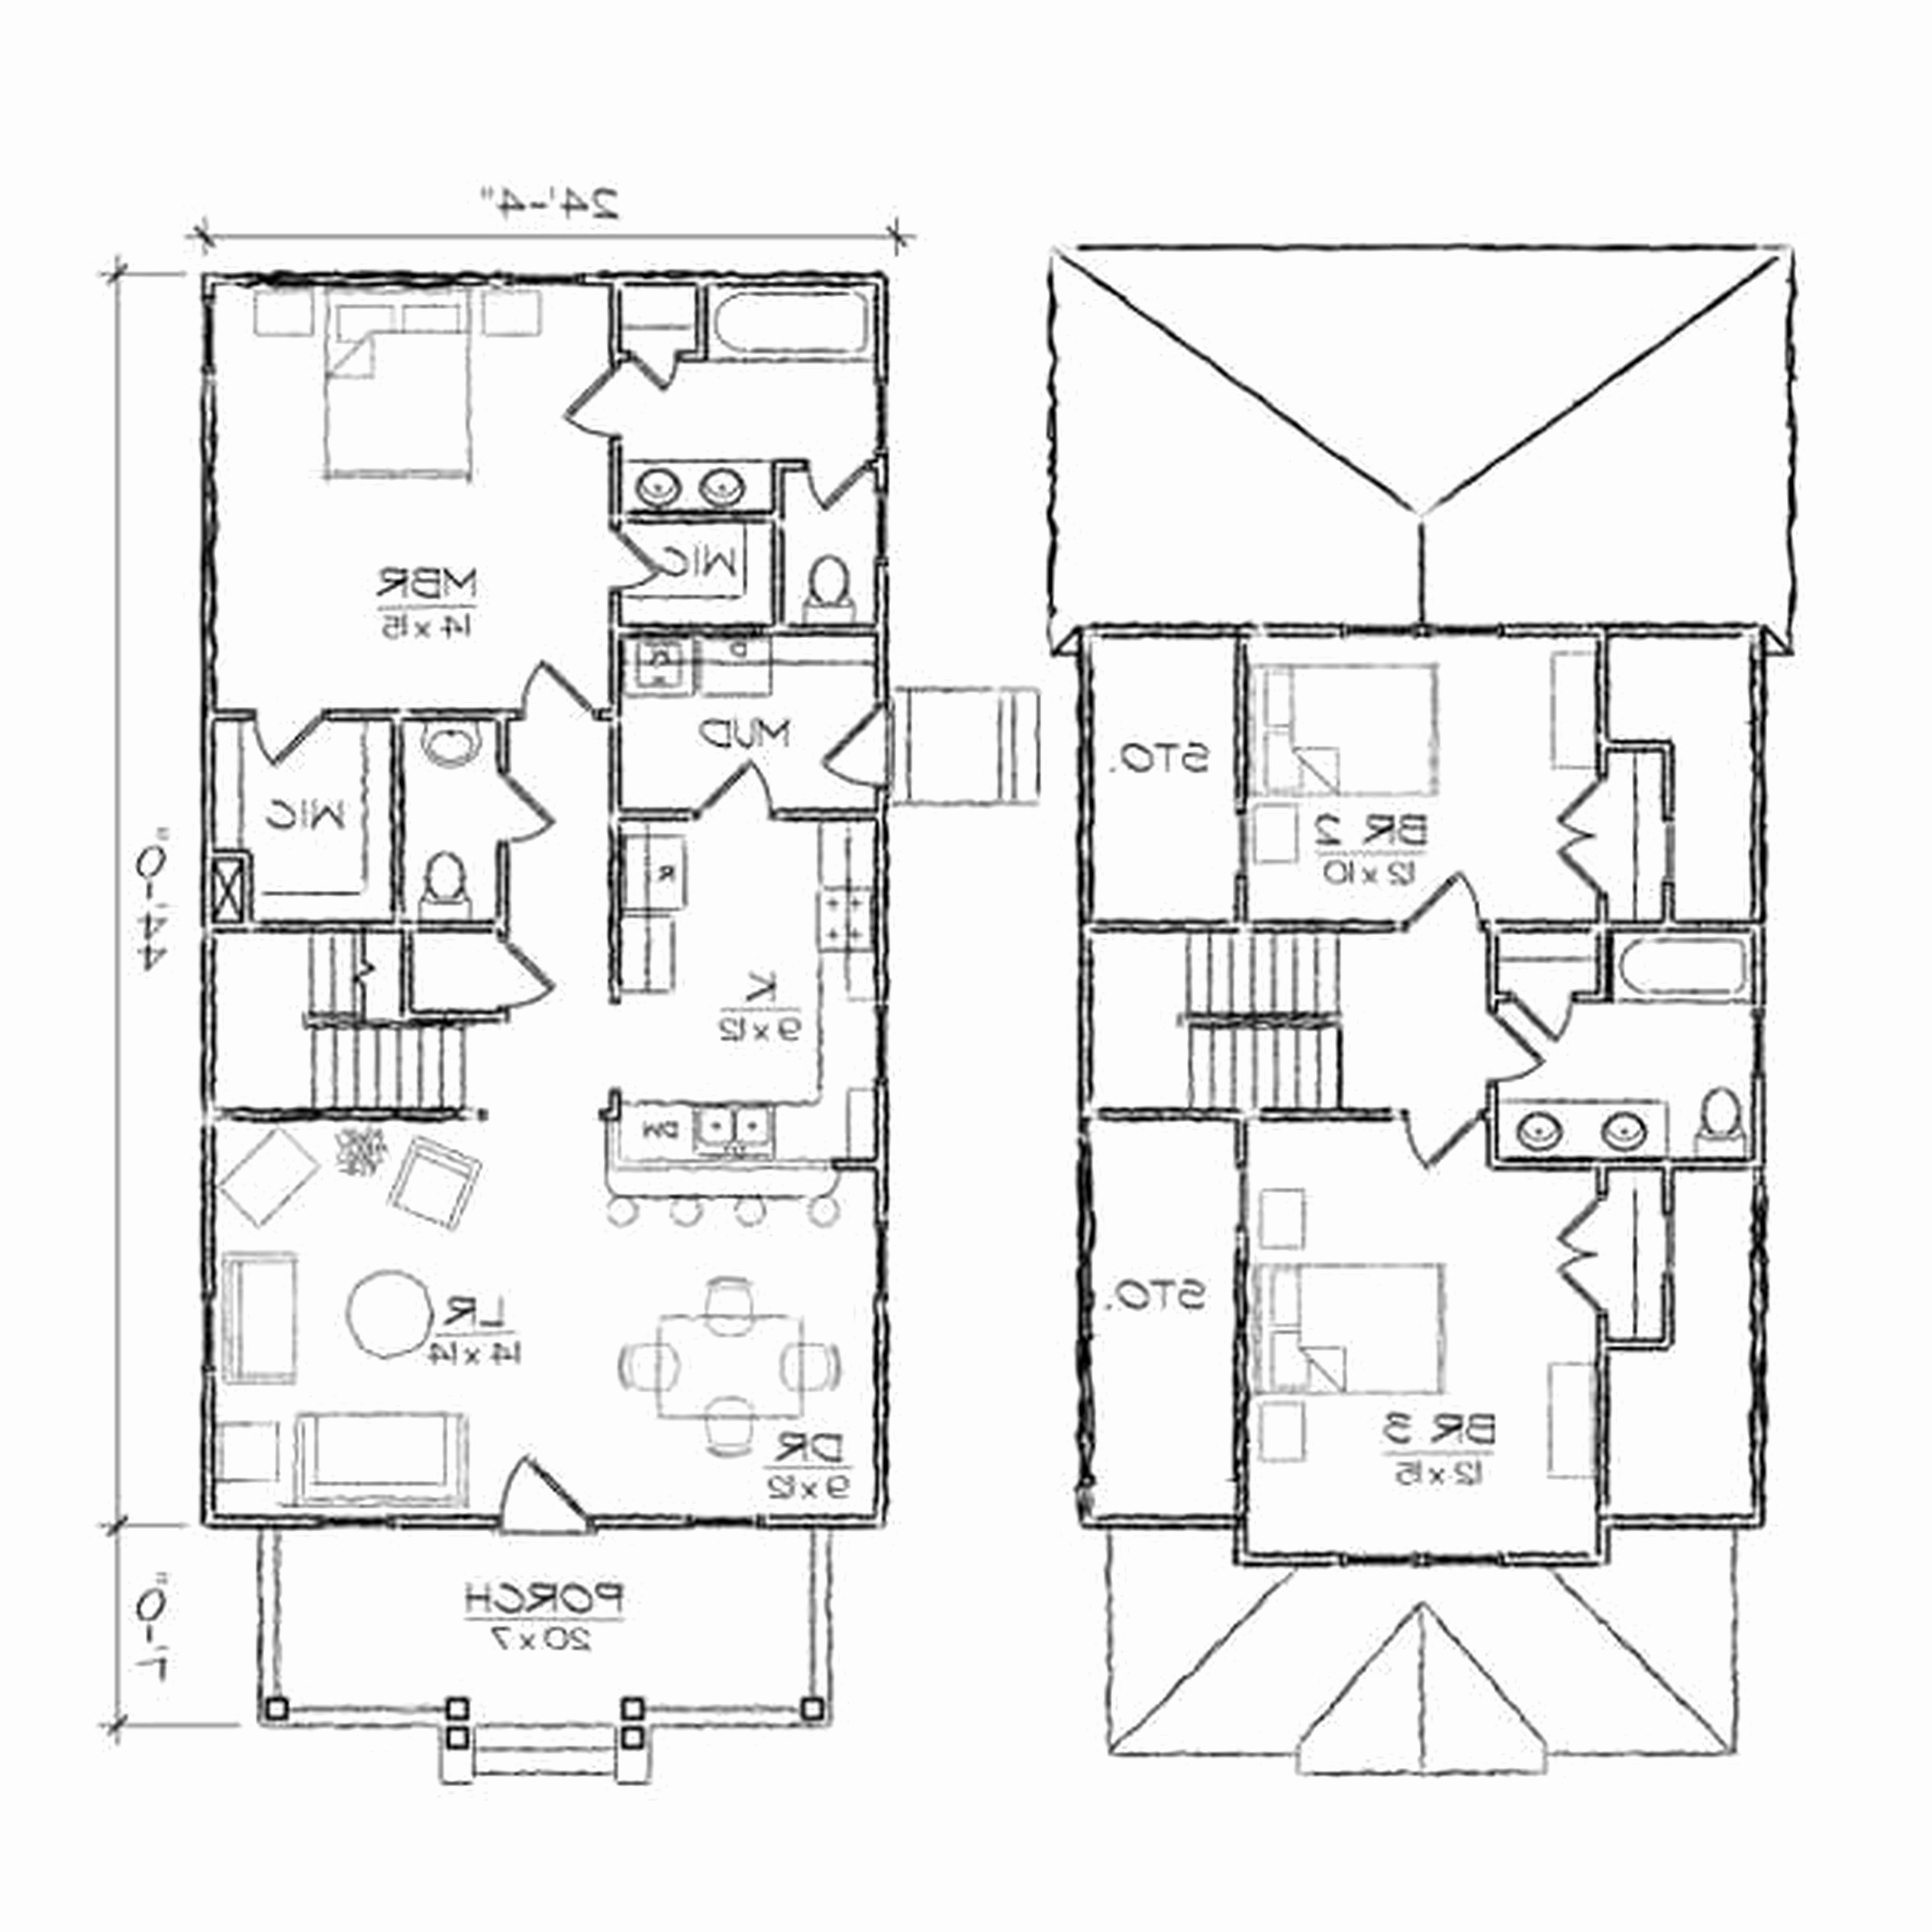 Inside a house drawing at free for for Zero lot line house plans